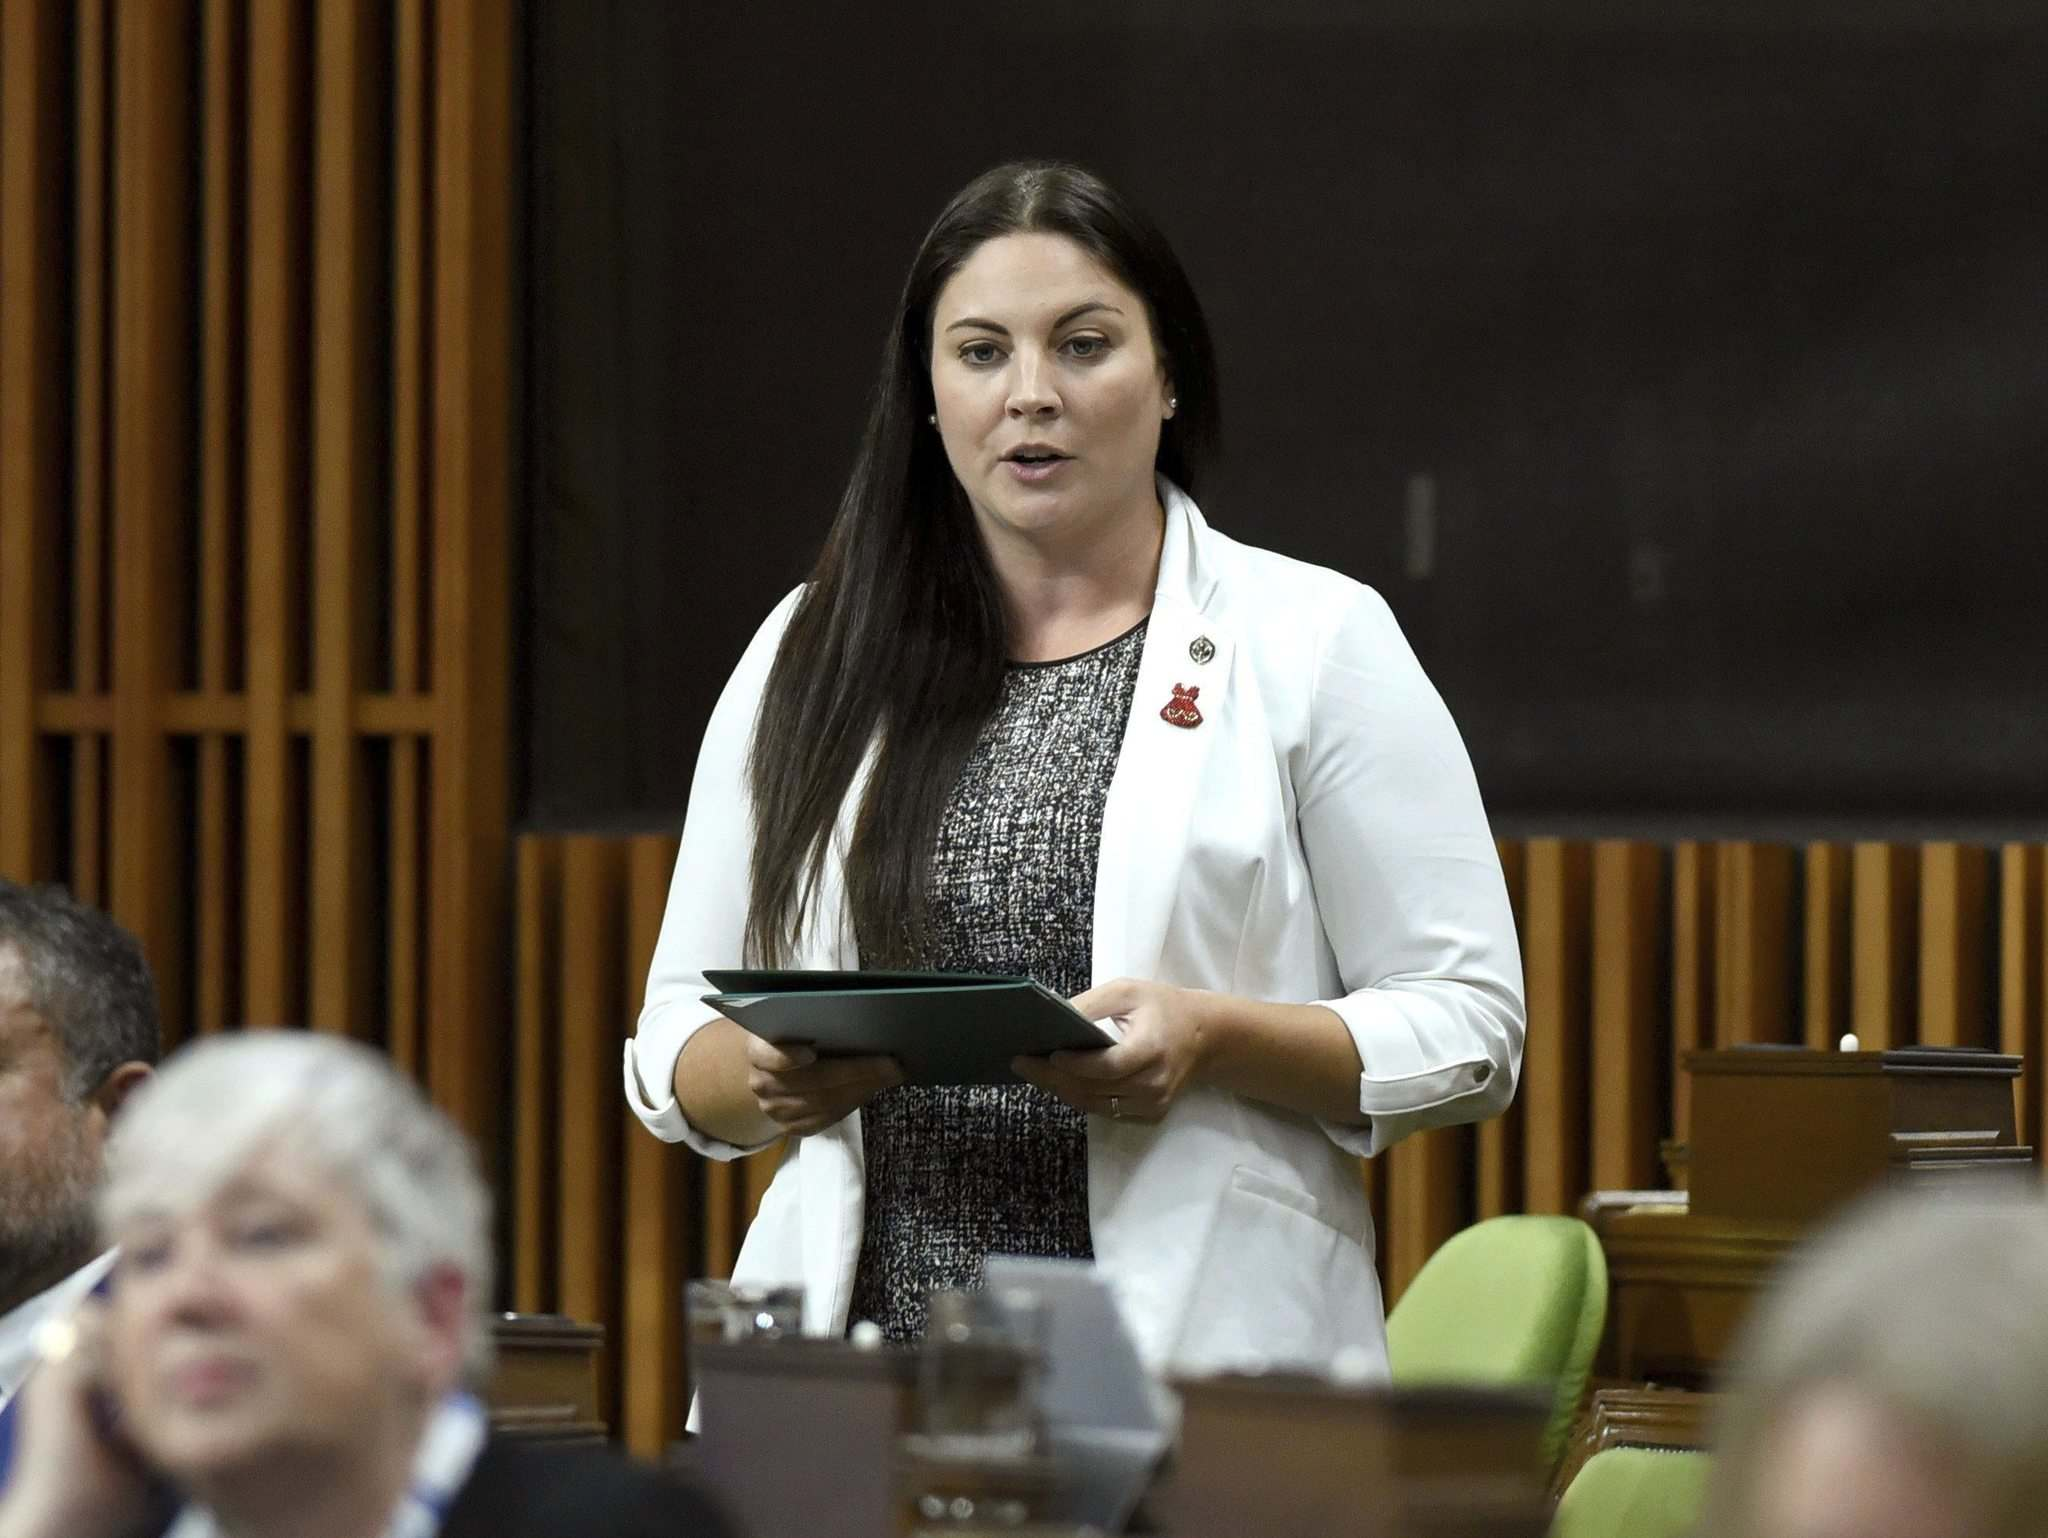 Jenica Atwin, MP for Fredericton, announced she was leaving the Green Party and joining the Liberals. (Justin Tang / The Canadian Press files)